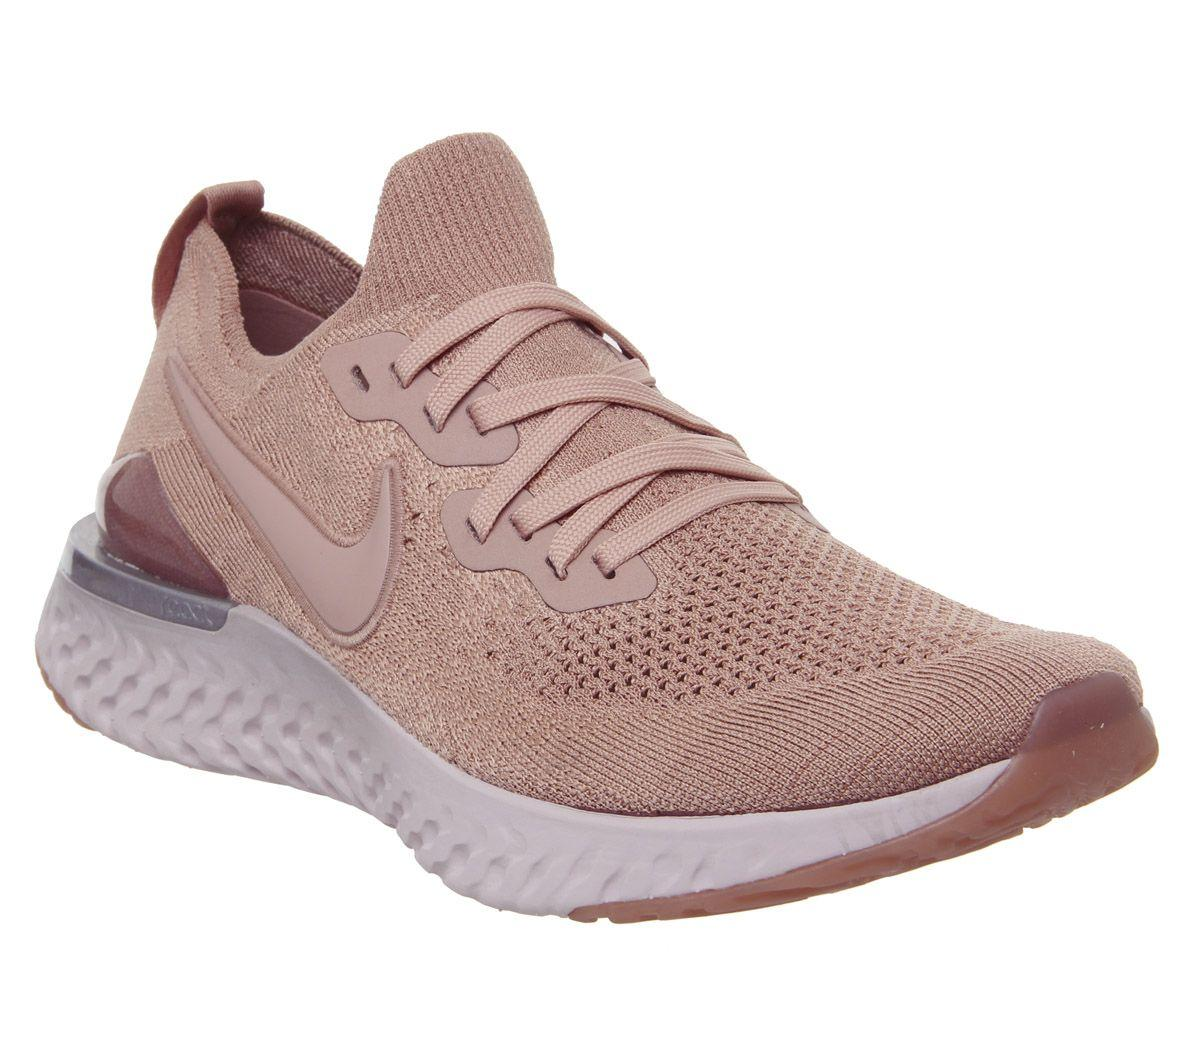 25f270d900d2 Nike Epic React Flyknit 2 Trainers in Pink for Men - Lyst